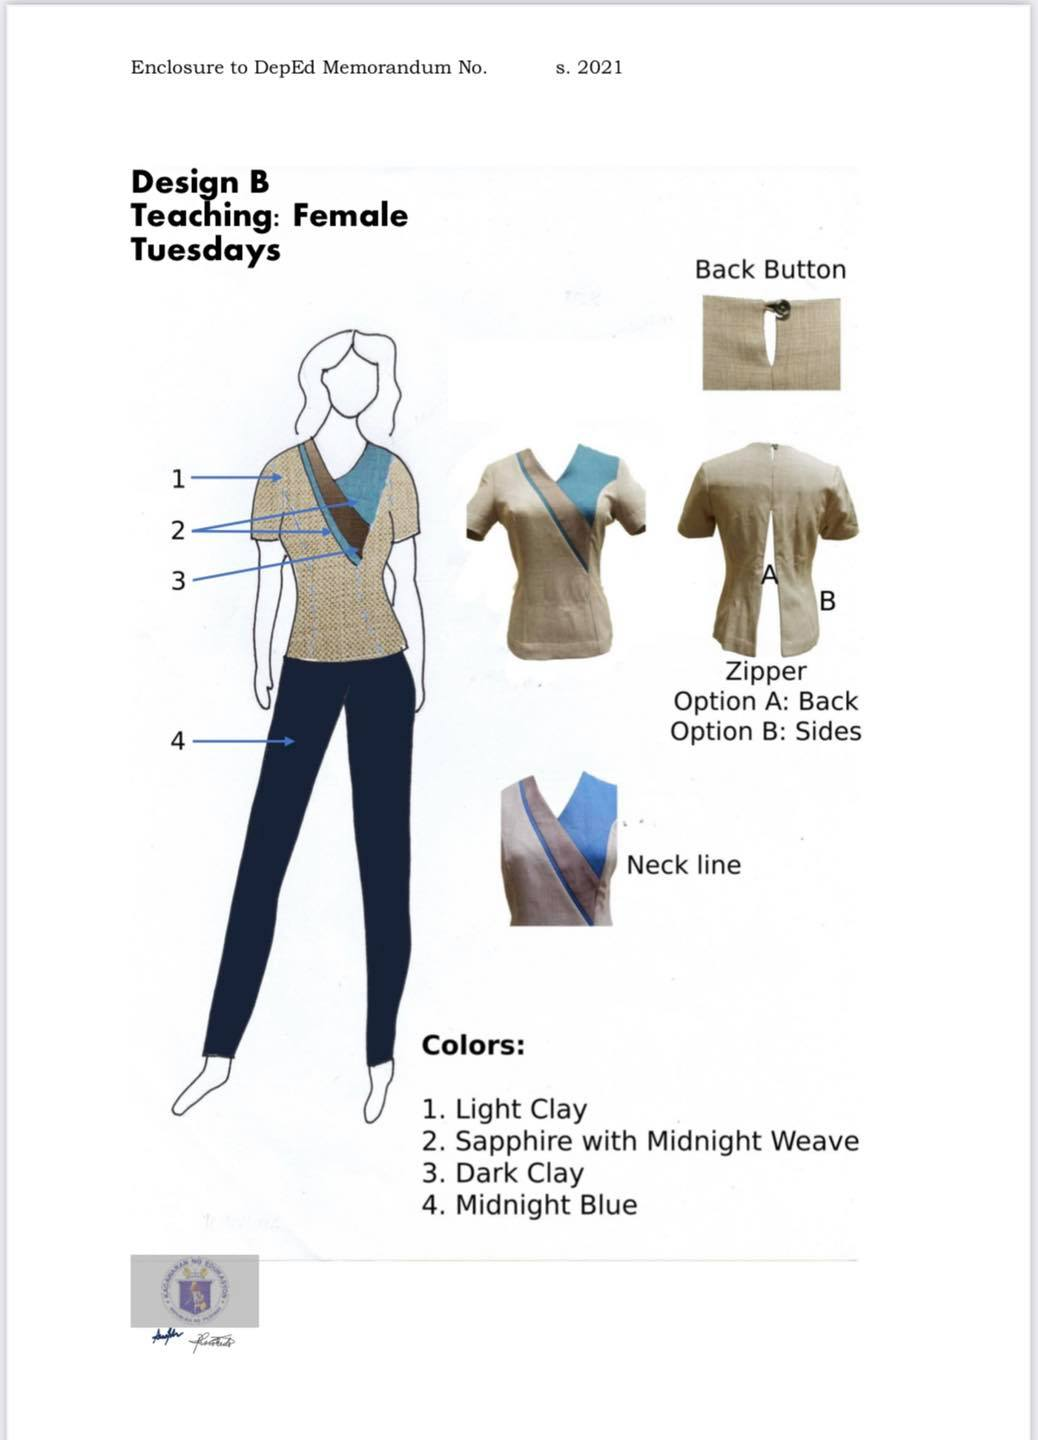 DepEd National Uniform Design B for Female Teaching Personnel (Tuesdays)